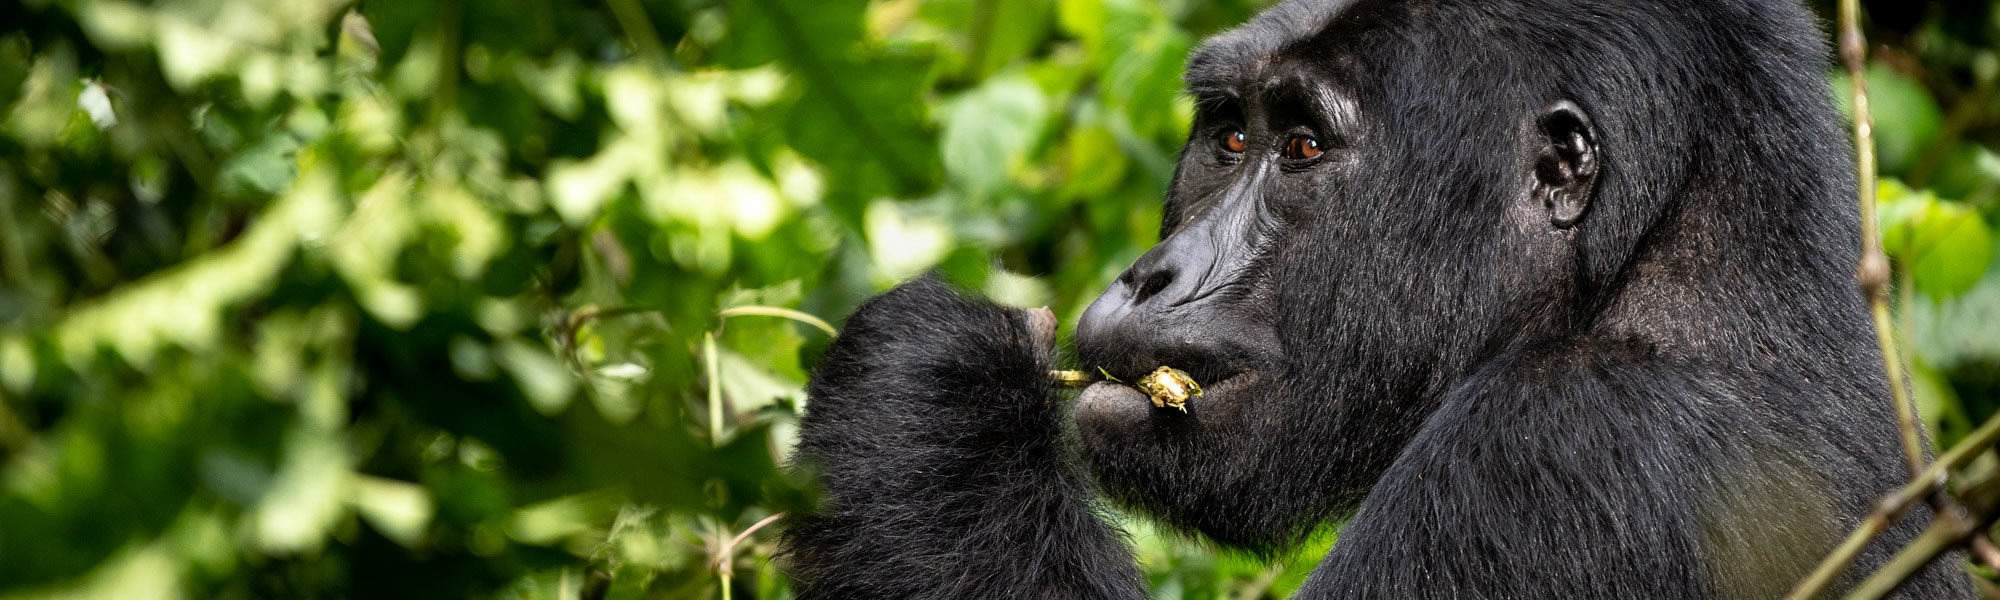 Bwindi Impenetrable Forest National Park Uganda Gorilla Trekking – Uganda Gorilla Tours And Gorilla Safaris